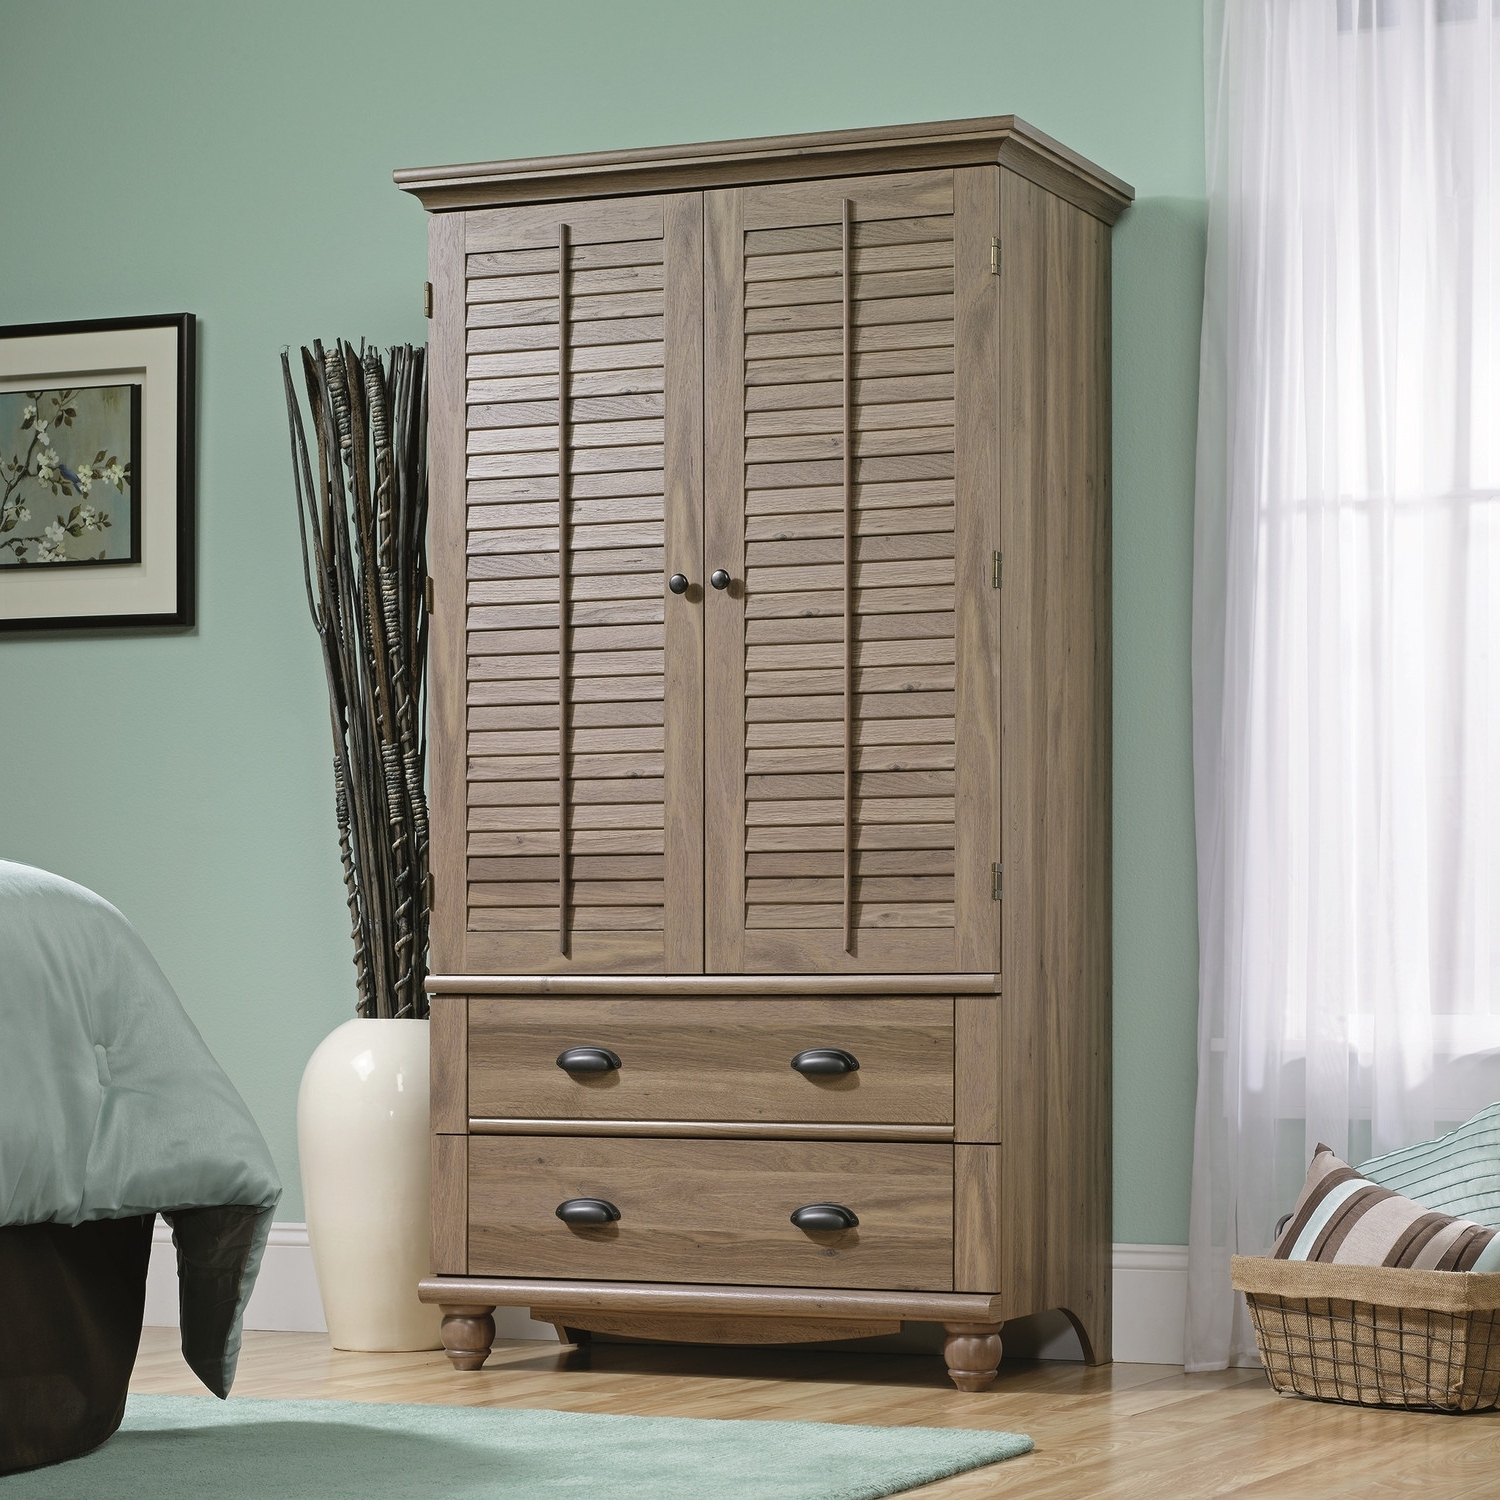 Widely Used Wicker Armoire Wardrobes Inside Bedroom: Antique Interior  Storage Design With Wardrobe Armoire (